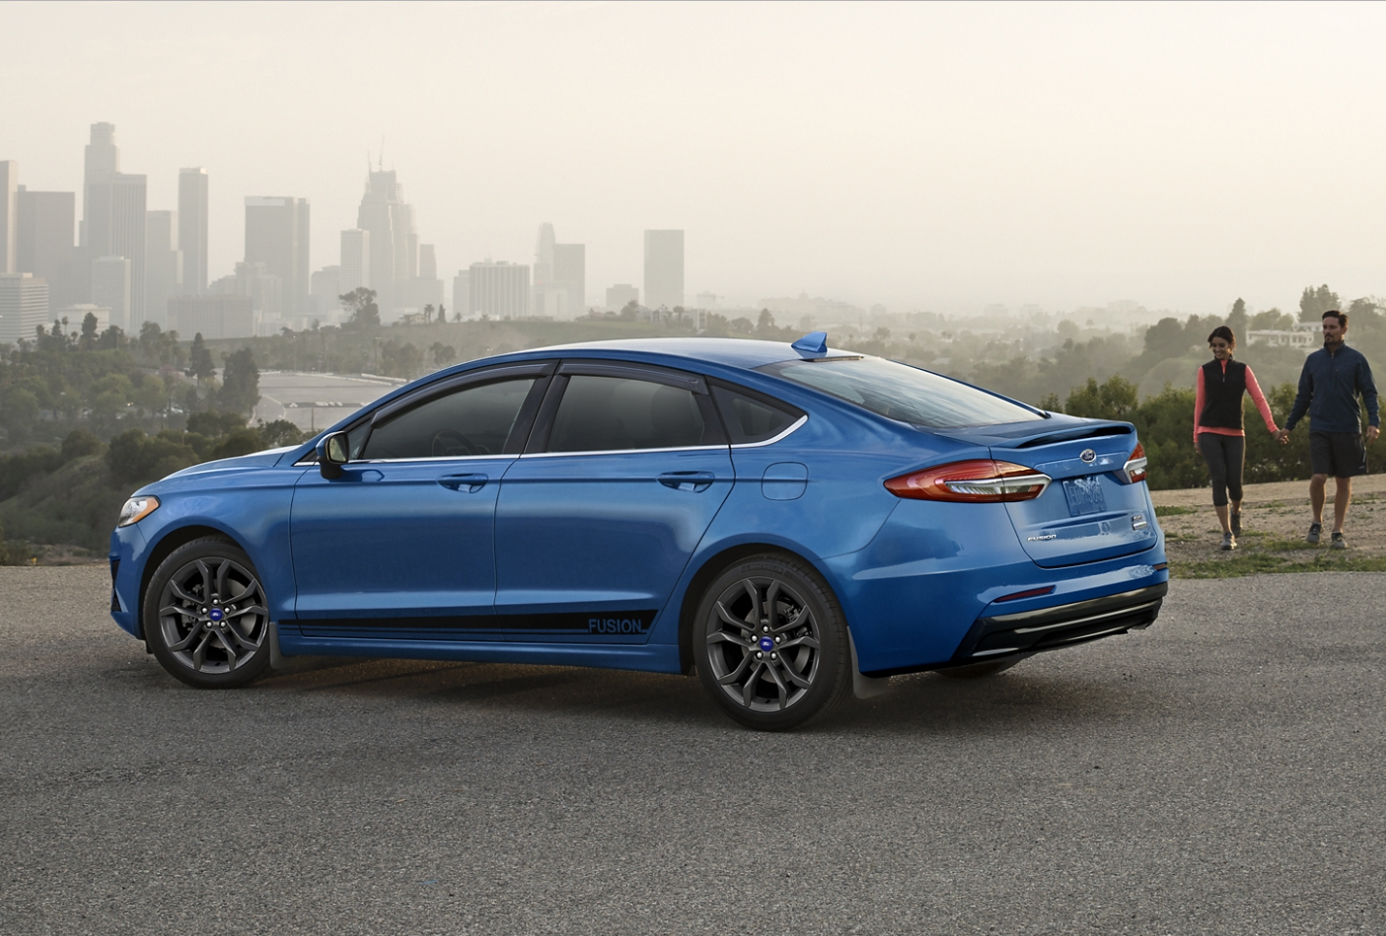 blue 2020 ford fusion parked on a hill top